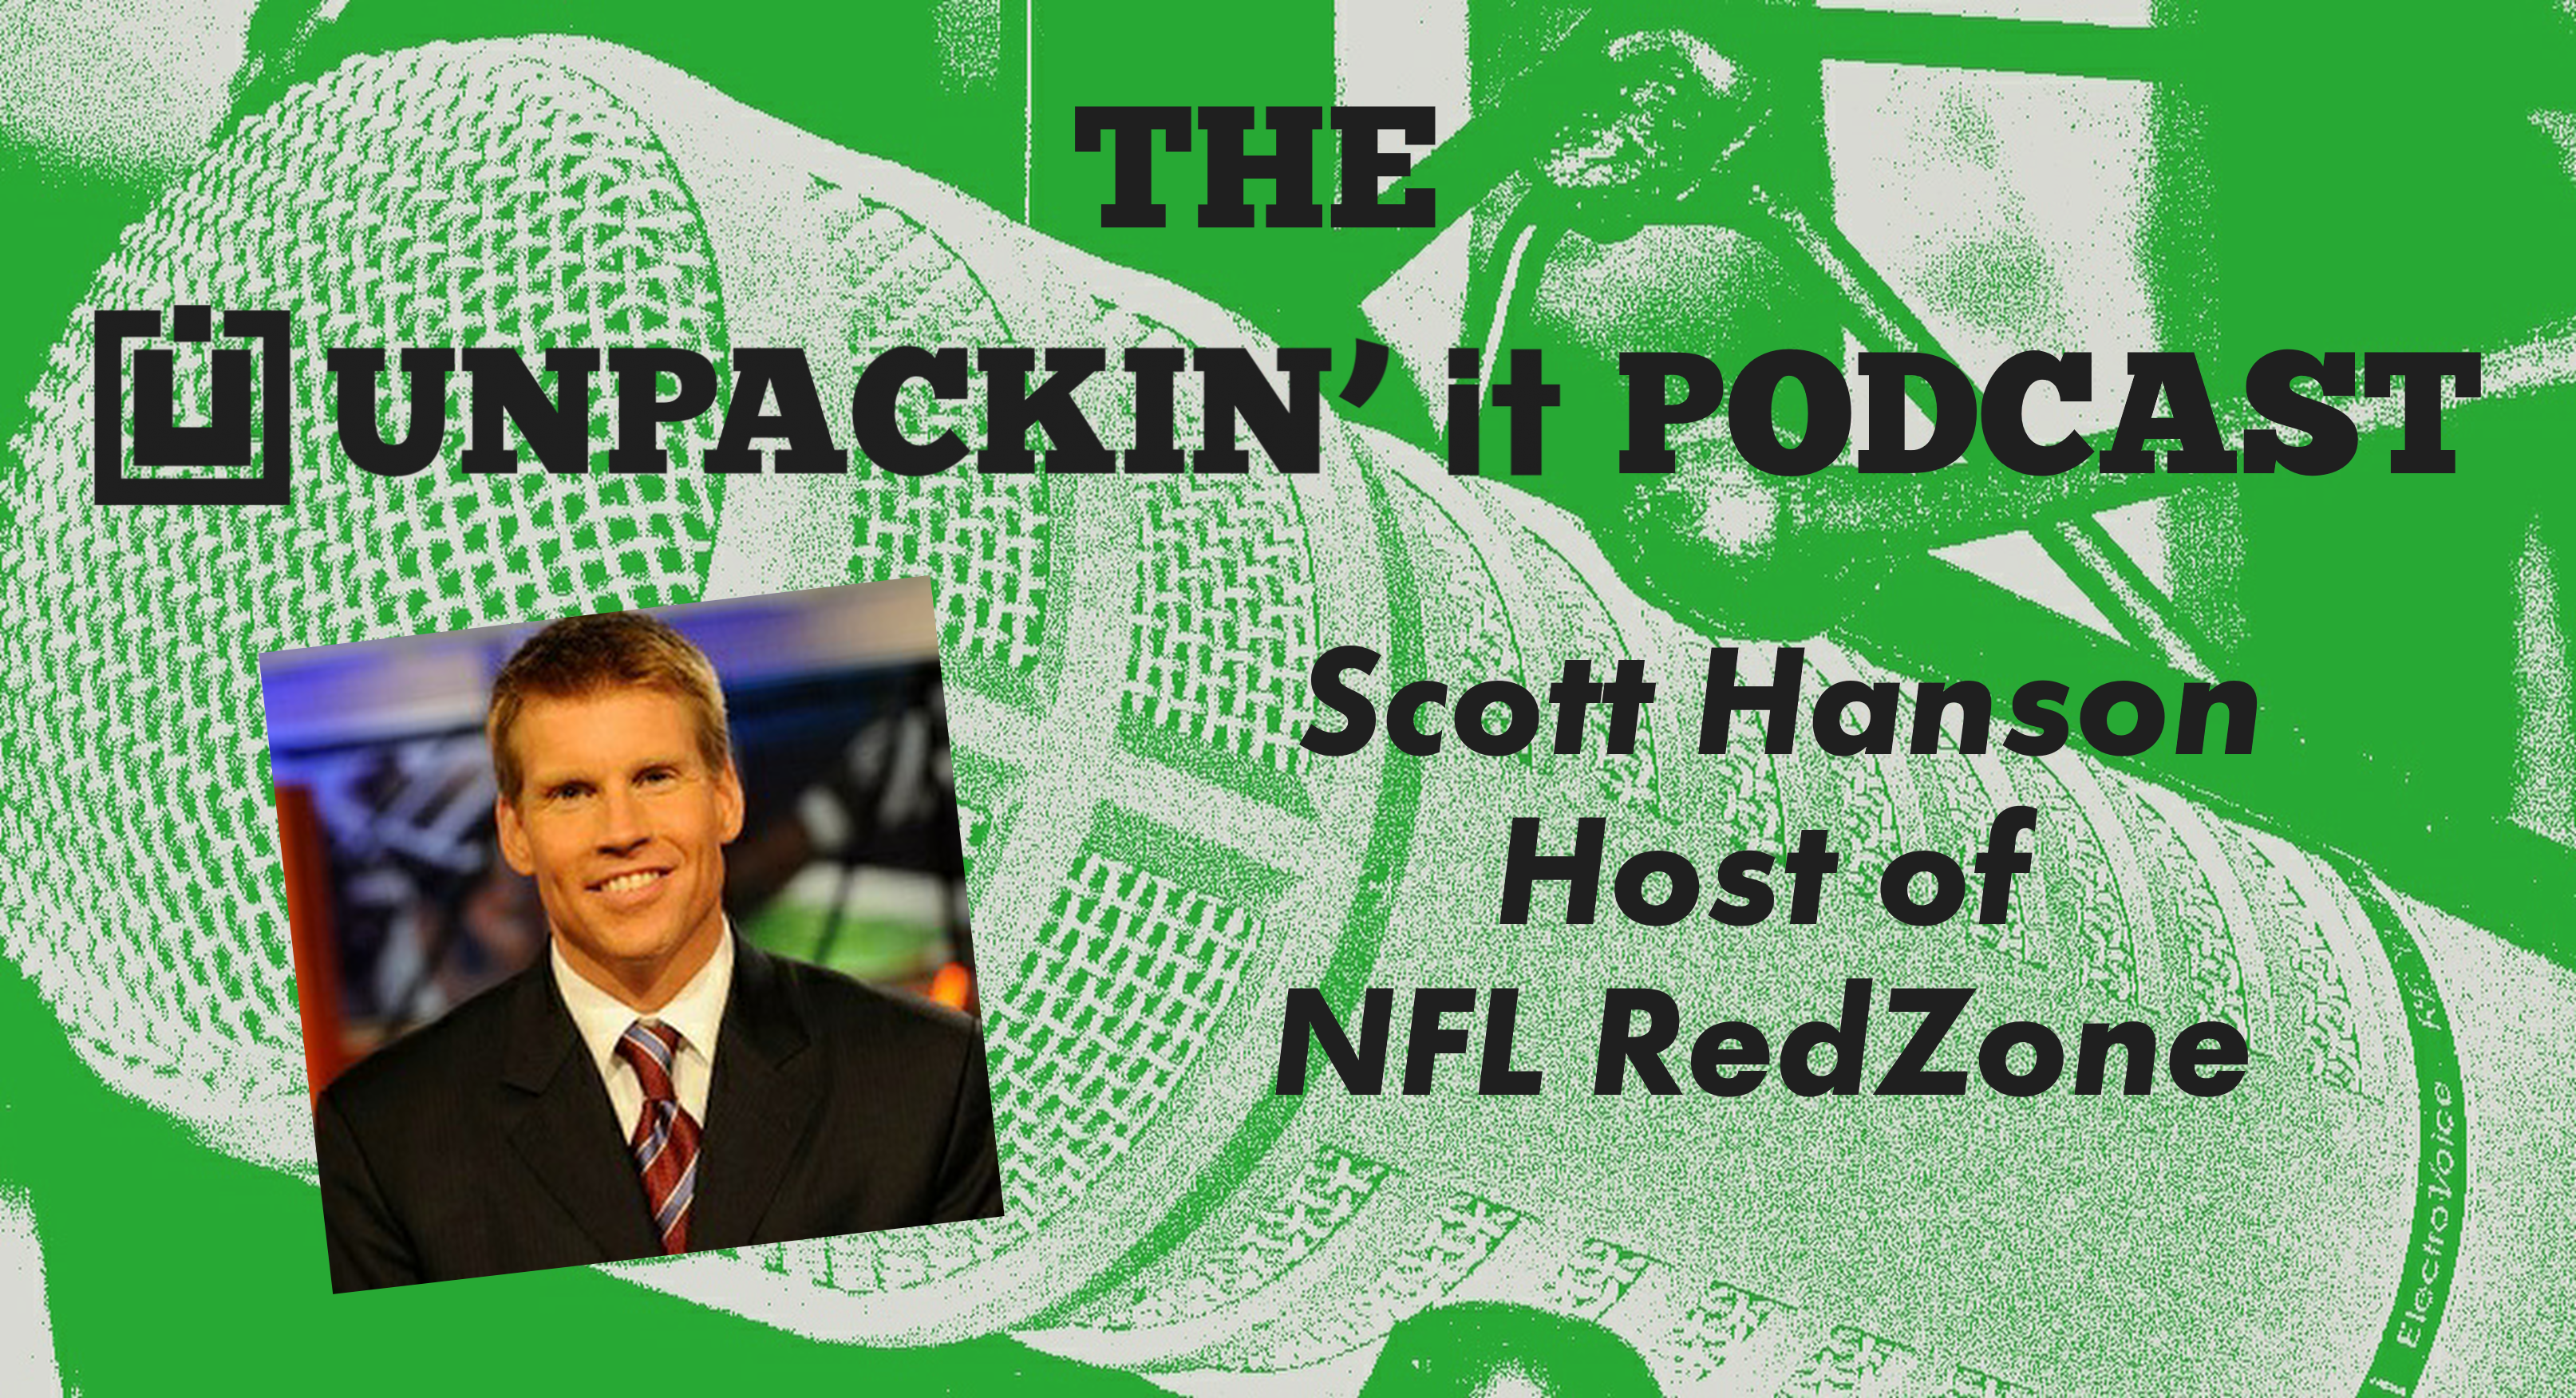 Scott Hanson, NFL Network